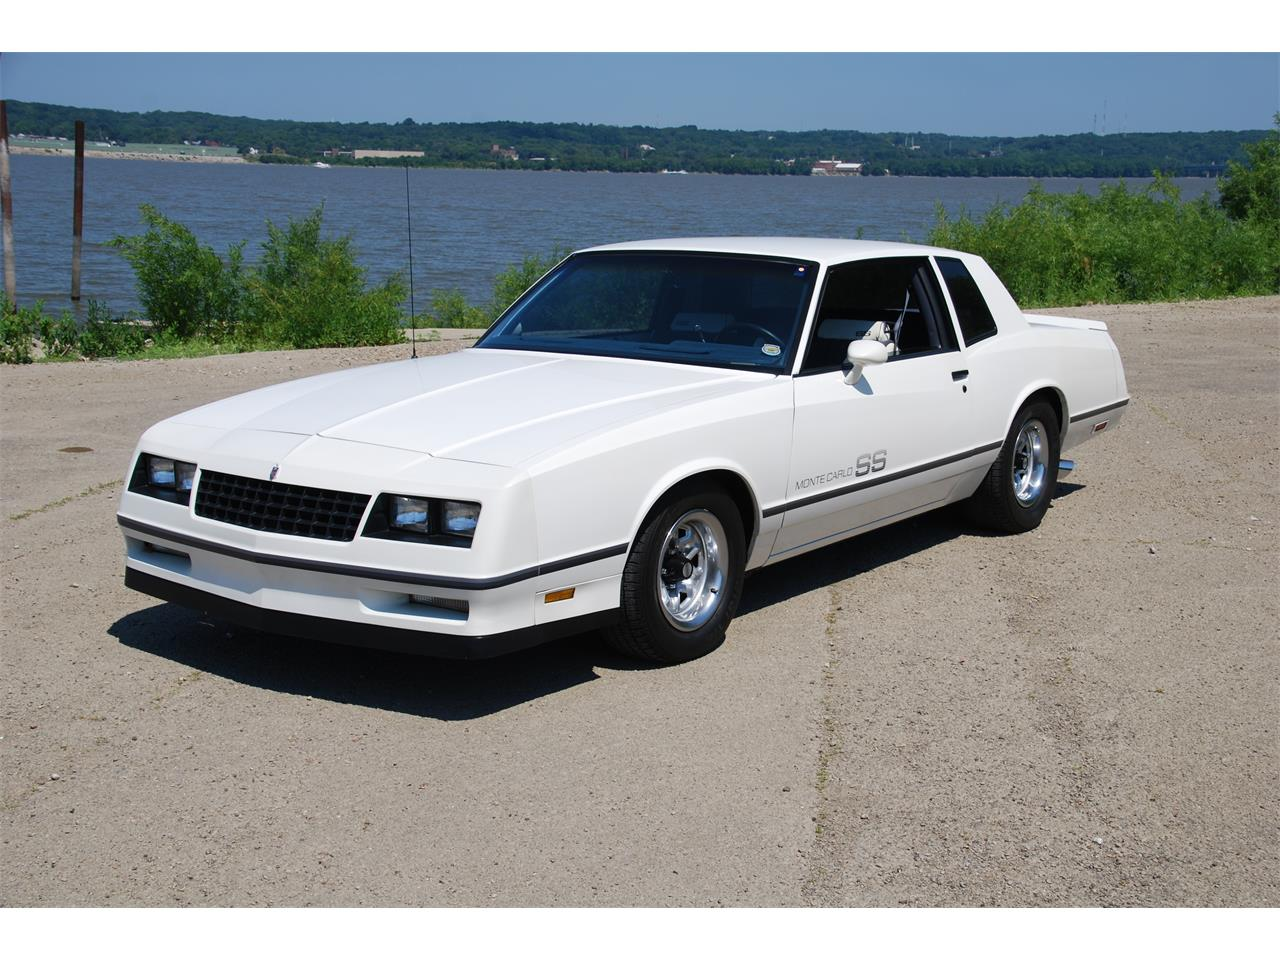 1983 chevrolet monte carlo ss for sale classiccars com cc 1020597 rh classiccars com 1983 chevy monte carlo specs 1983 chevy monte carlo specs